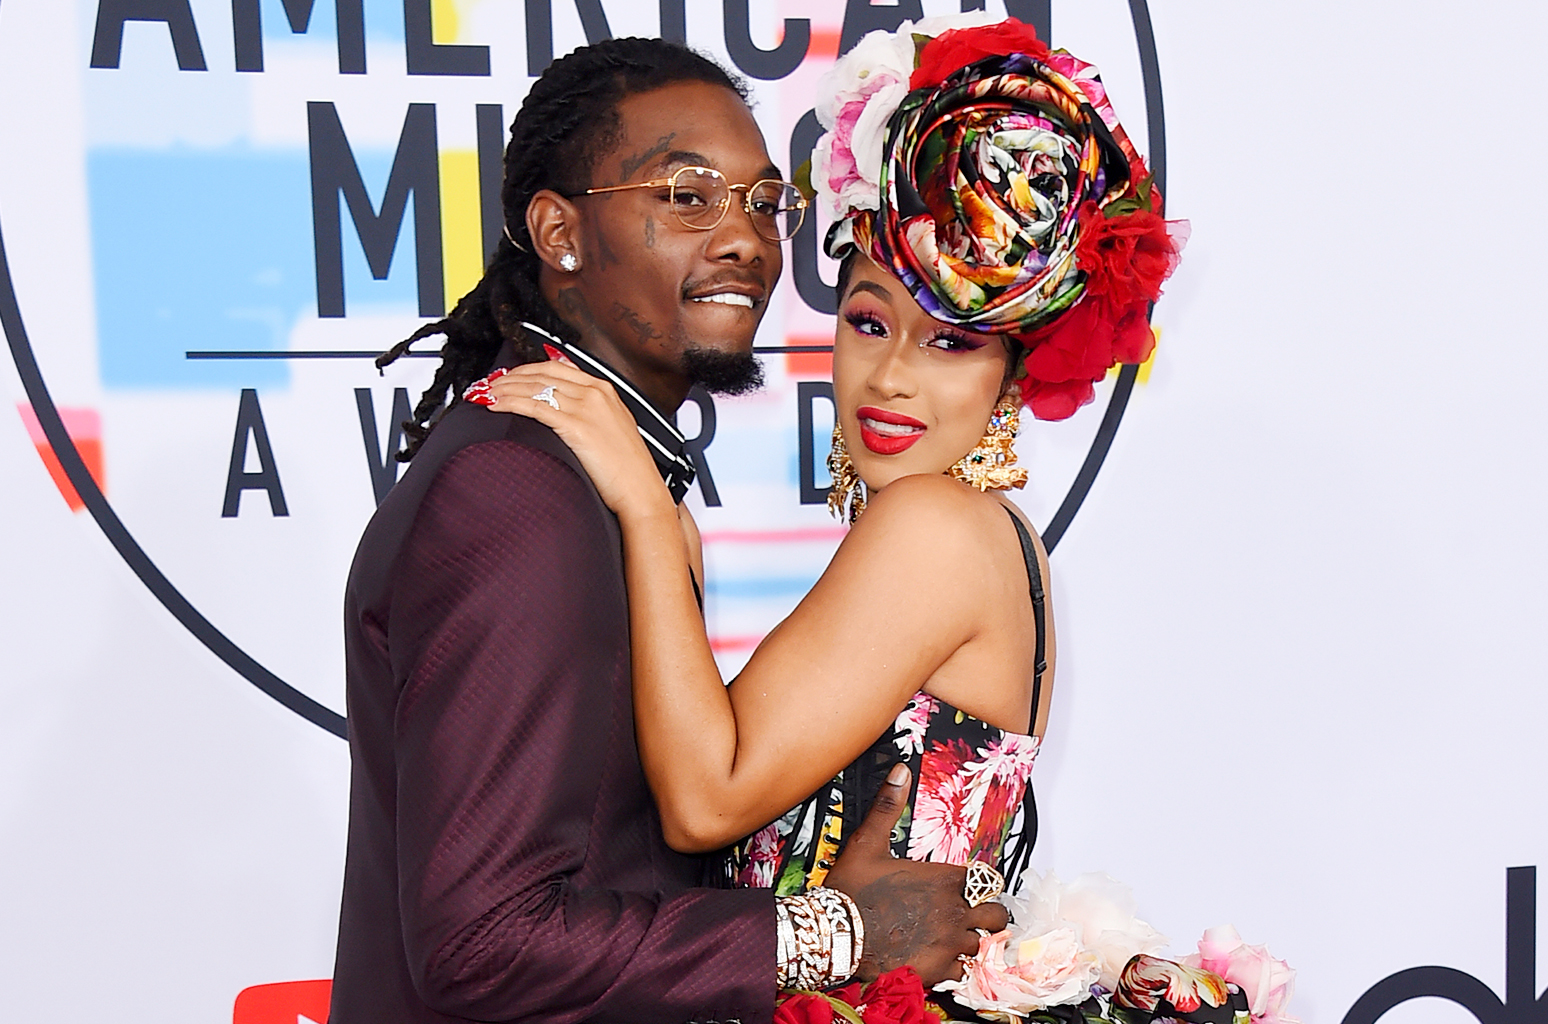 #CardiB, Cardi B, #Offset, Offset, #PureTruth, Pure Truth, #Pure Truth LLC, #music, #news, music, news, #media, media, #multimedia, multimedia.